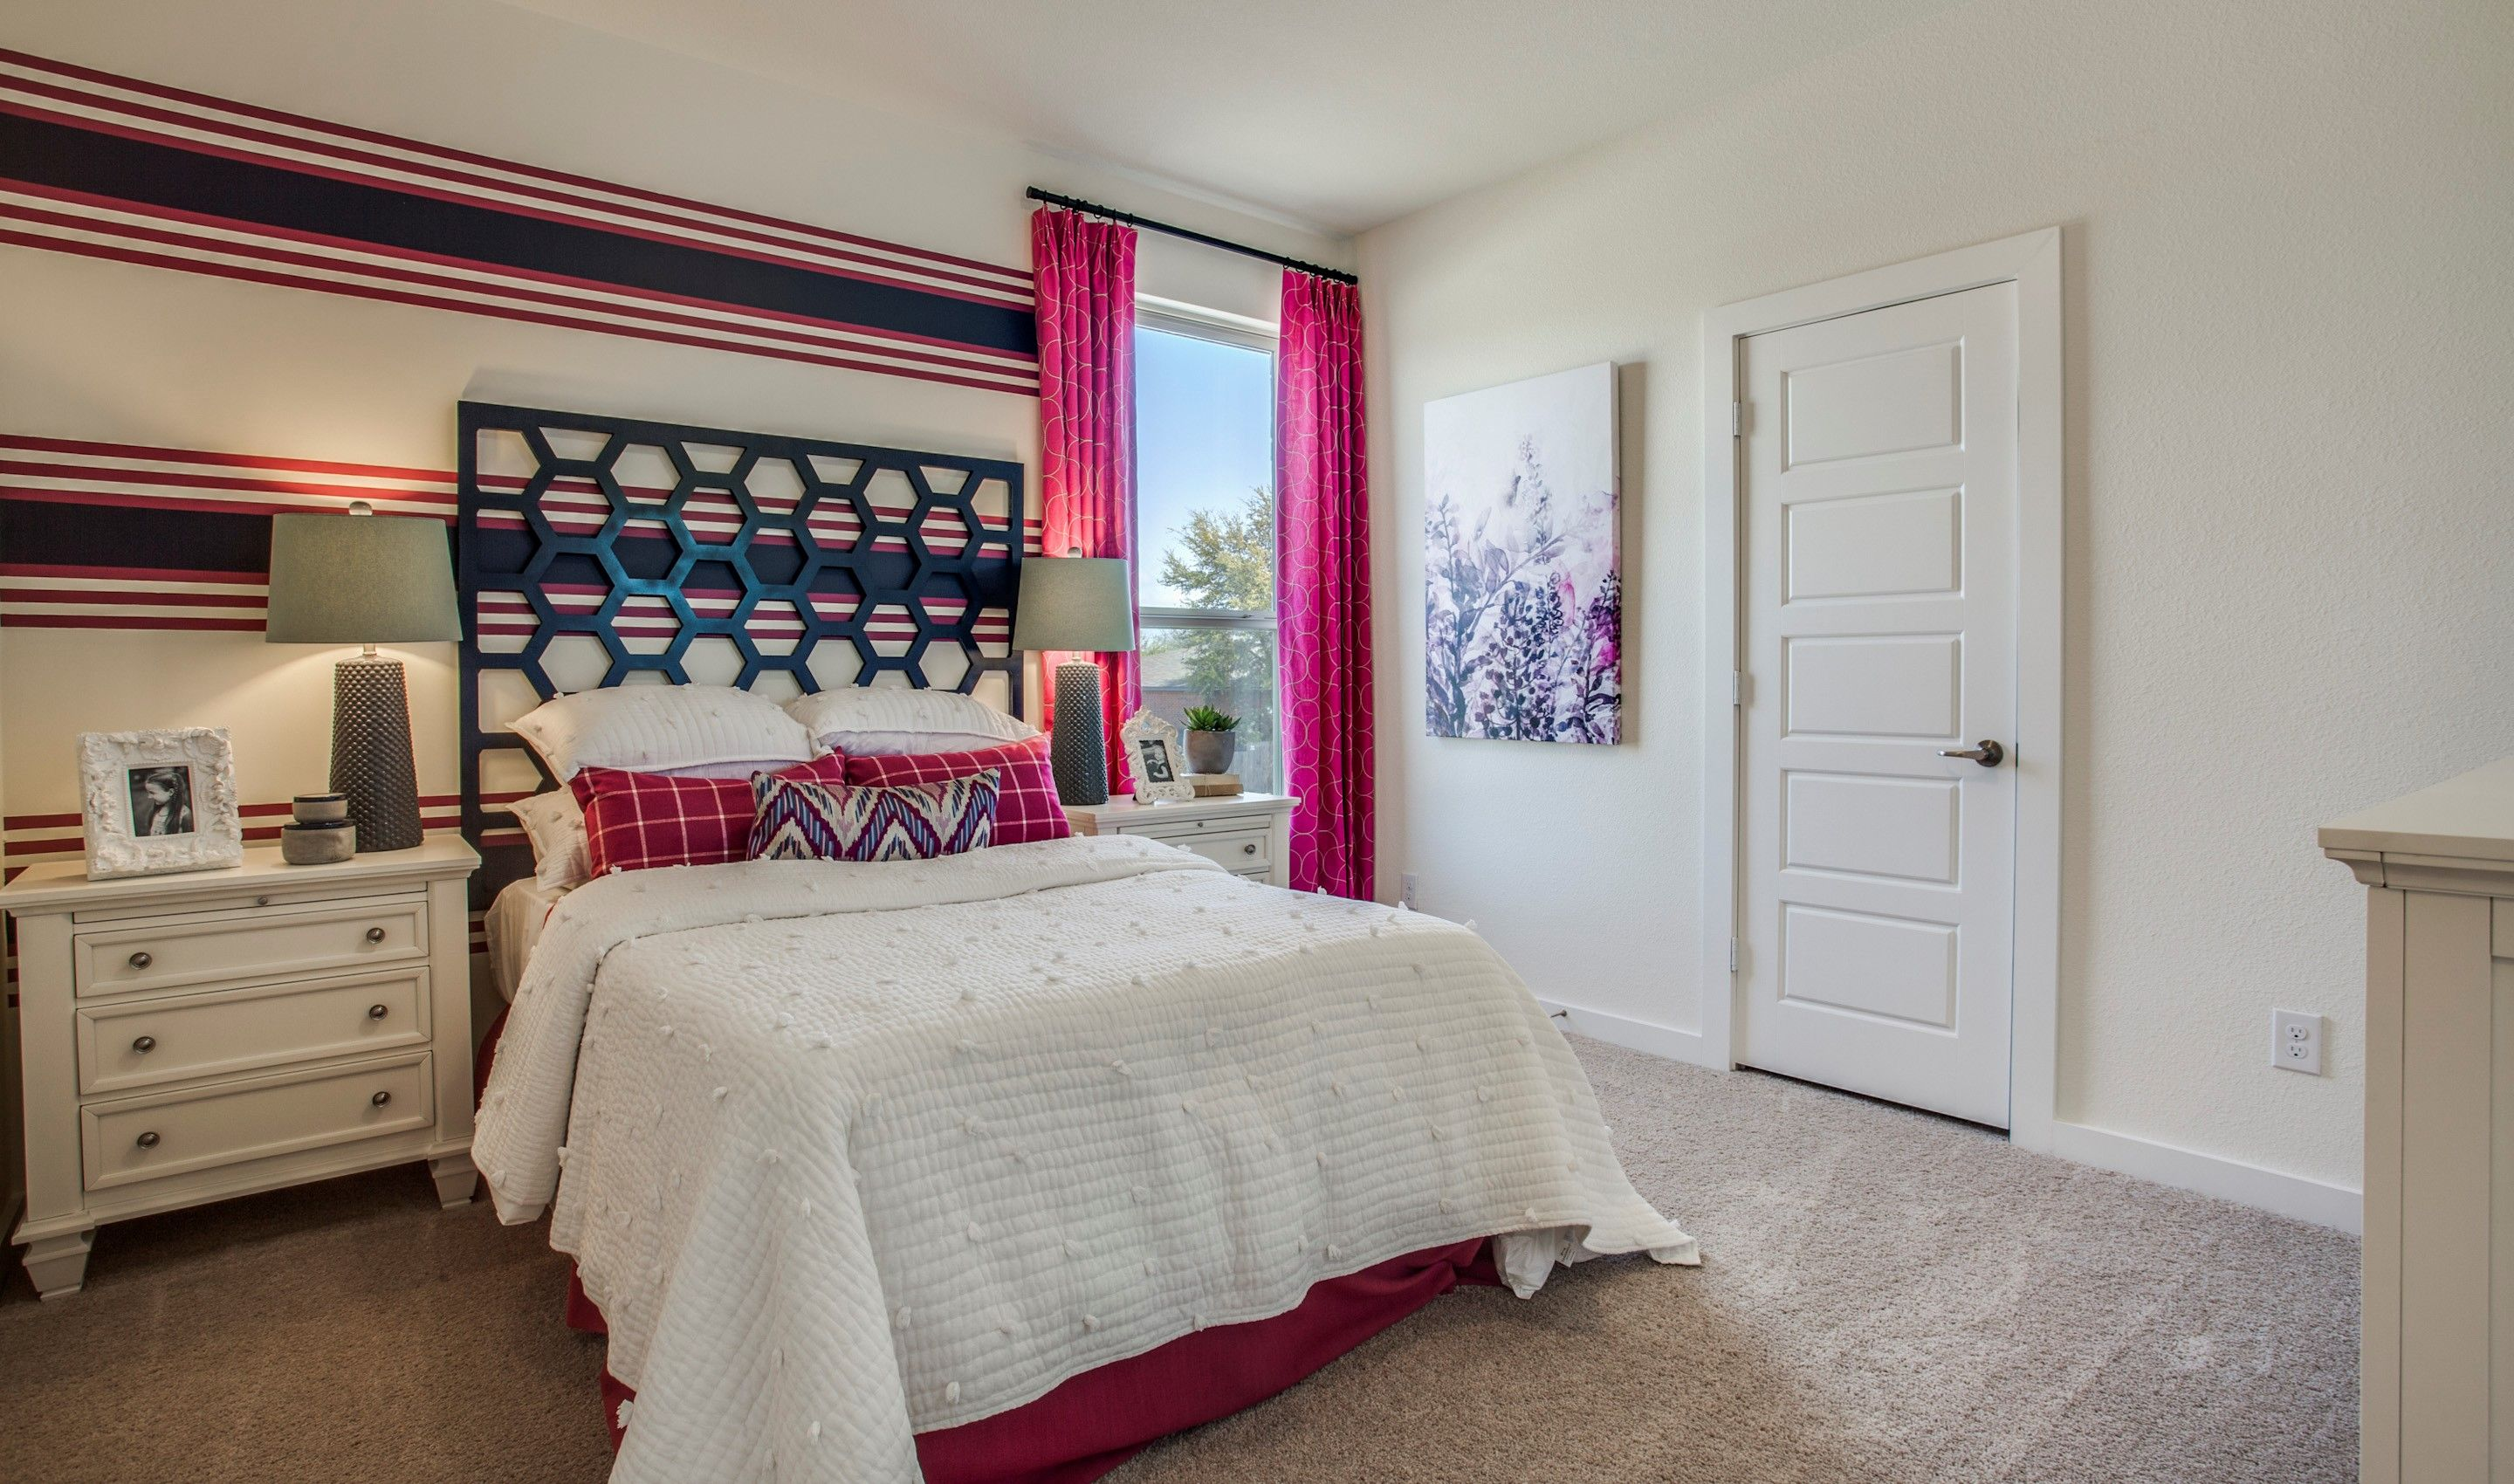 Bedroom featured in the Calloway II - 3 Car By K. Hovnanian® Homes in Dallas, TX